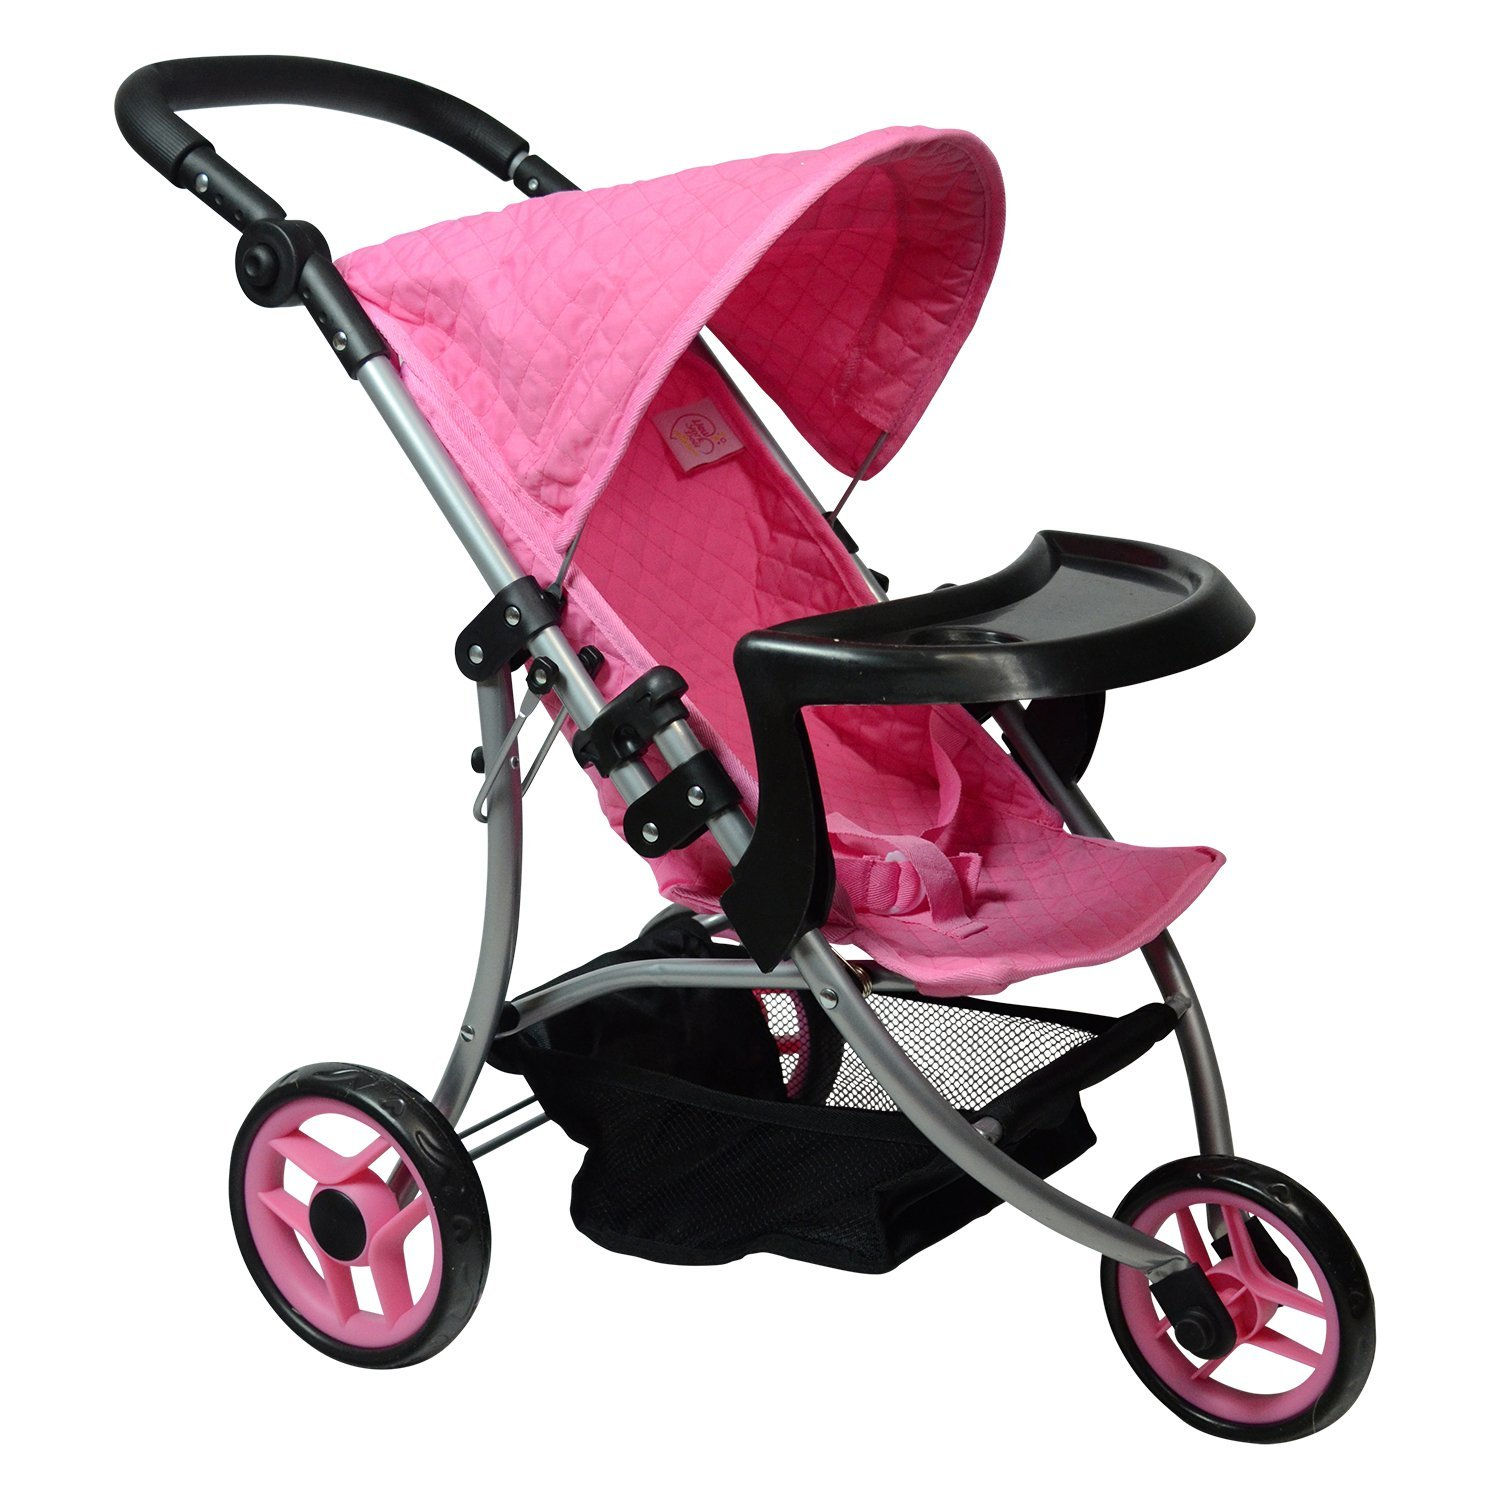 Modern Doll Jogging Stroller - SUPERIOR QUALITY Quilted Fabric- NEW LUXURY COLLECTION - Ages 2+- Stroller for 18 inch Dolls (Pink)